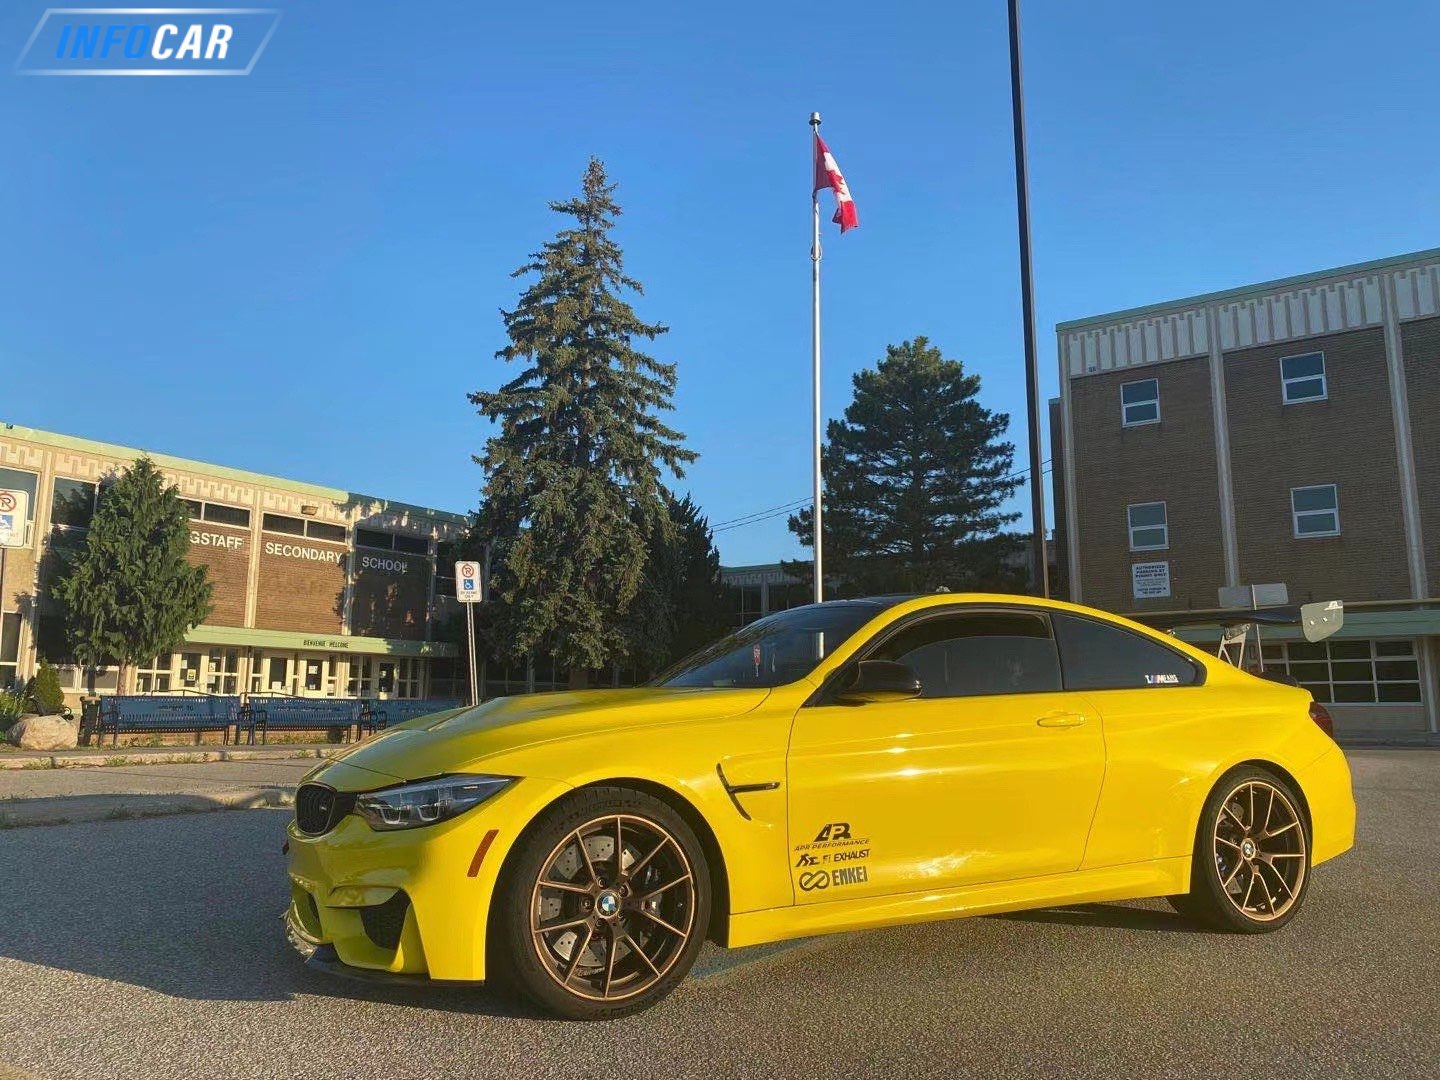 2019 BMW 4-Series Gran Coupe m4cs - INFOCAR - Toronto's Most Comprehensive New and Used Auto Trading Platform